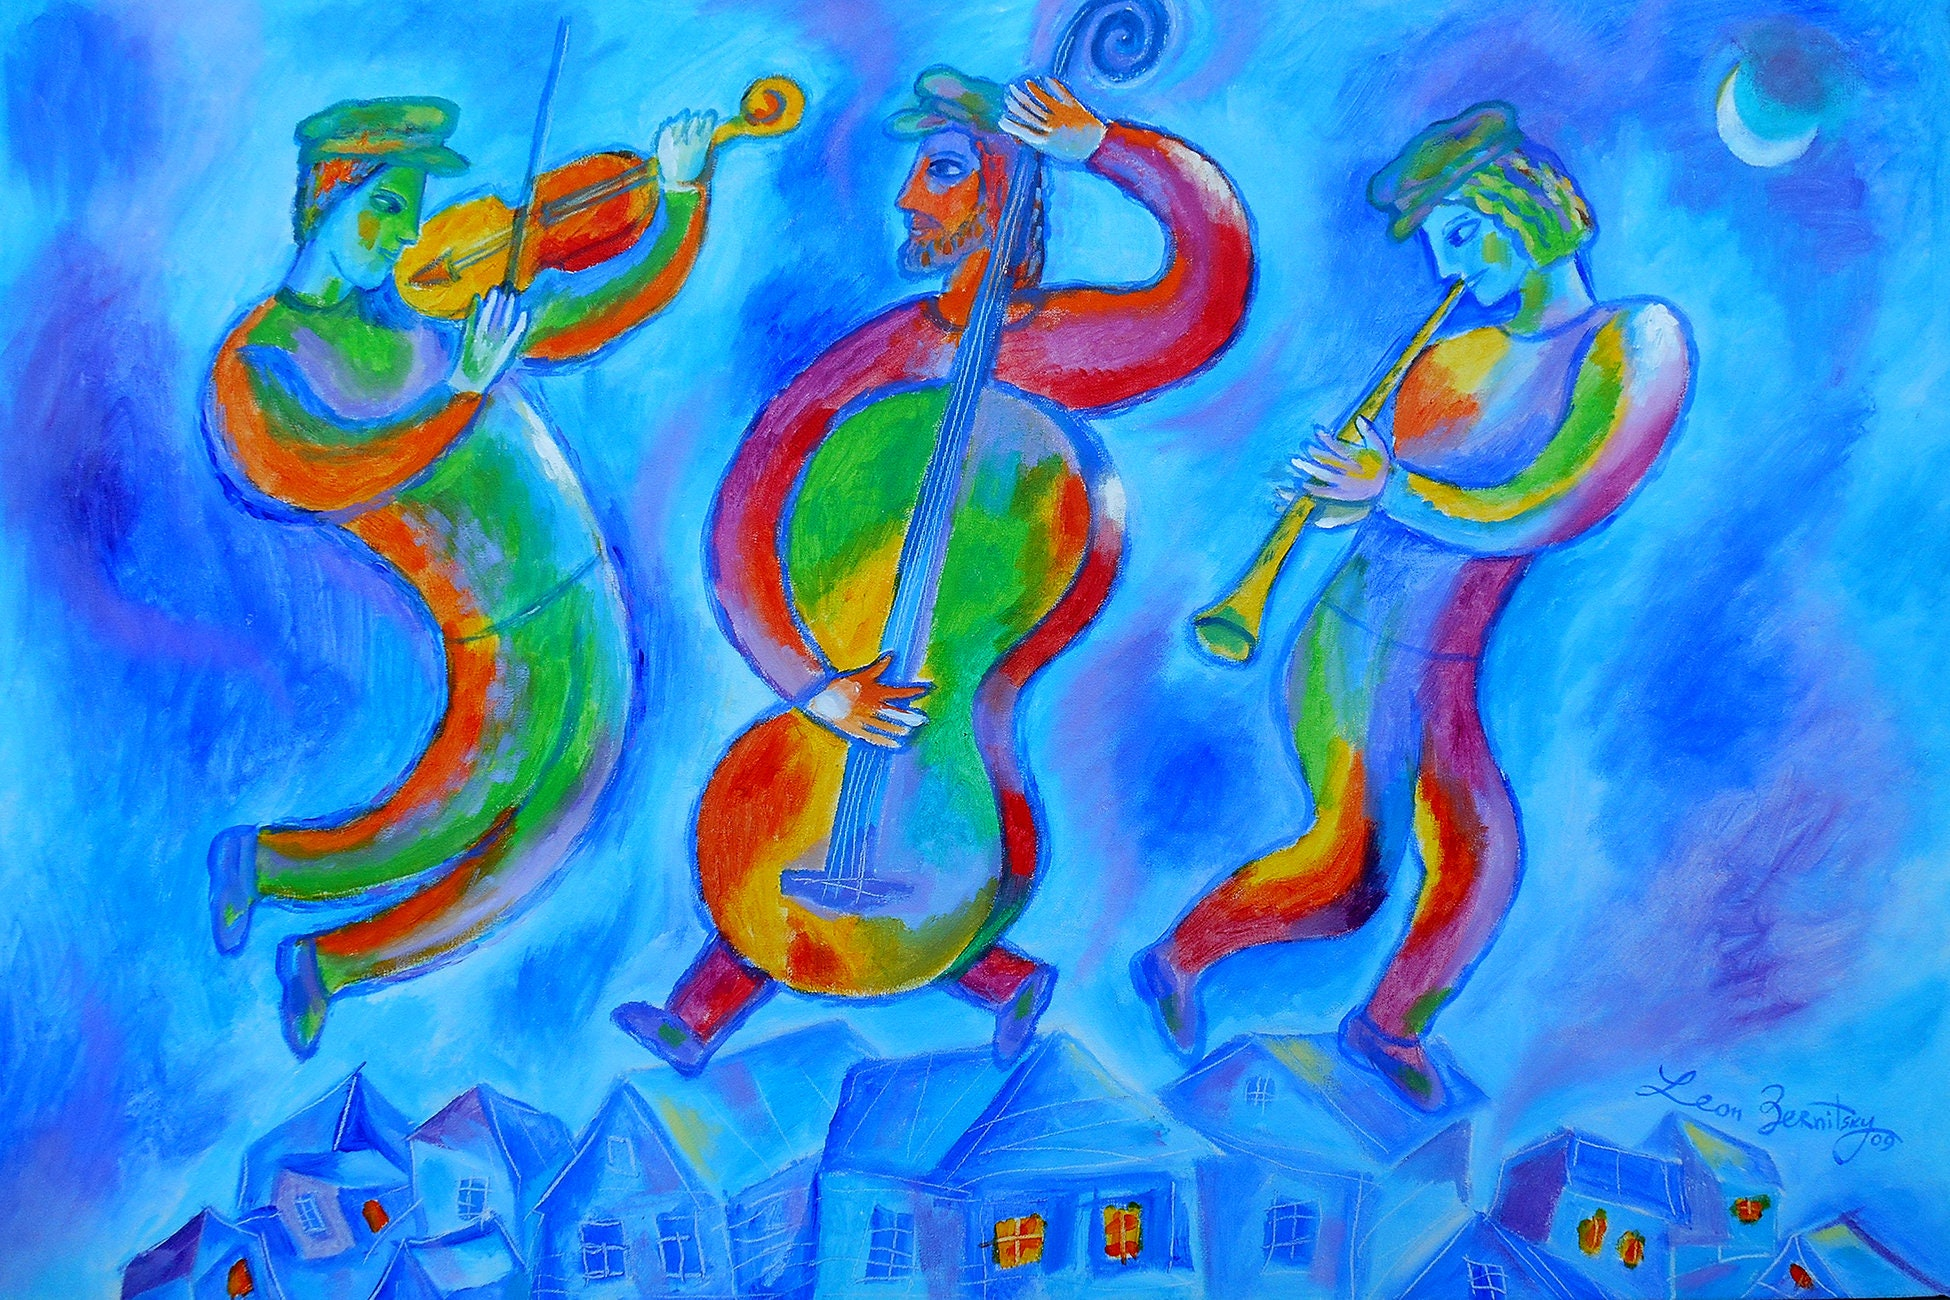 Original Art Judaica Art Wall Art Modern Jewish Painting Marc Chagall Style Klezmer Music Painting Stretched On A Wooden Frame